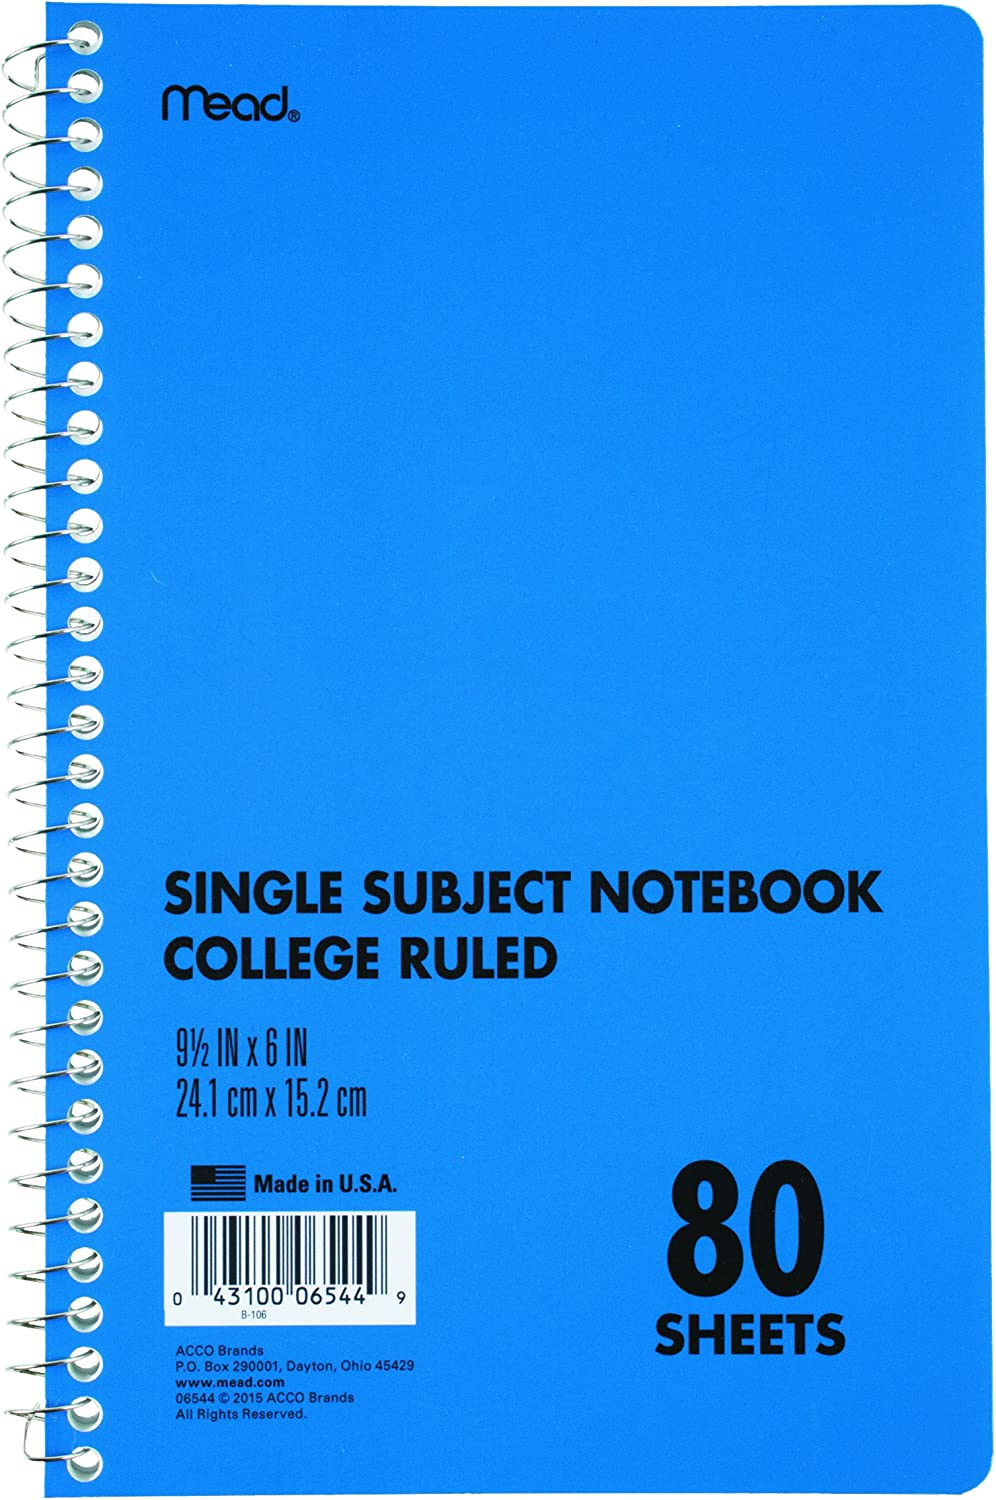 Mead Spiral Bound Notebook Perforated College Rule 9 1//2 x 6 White 150 Sheets